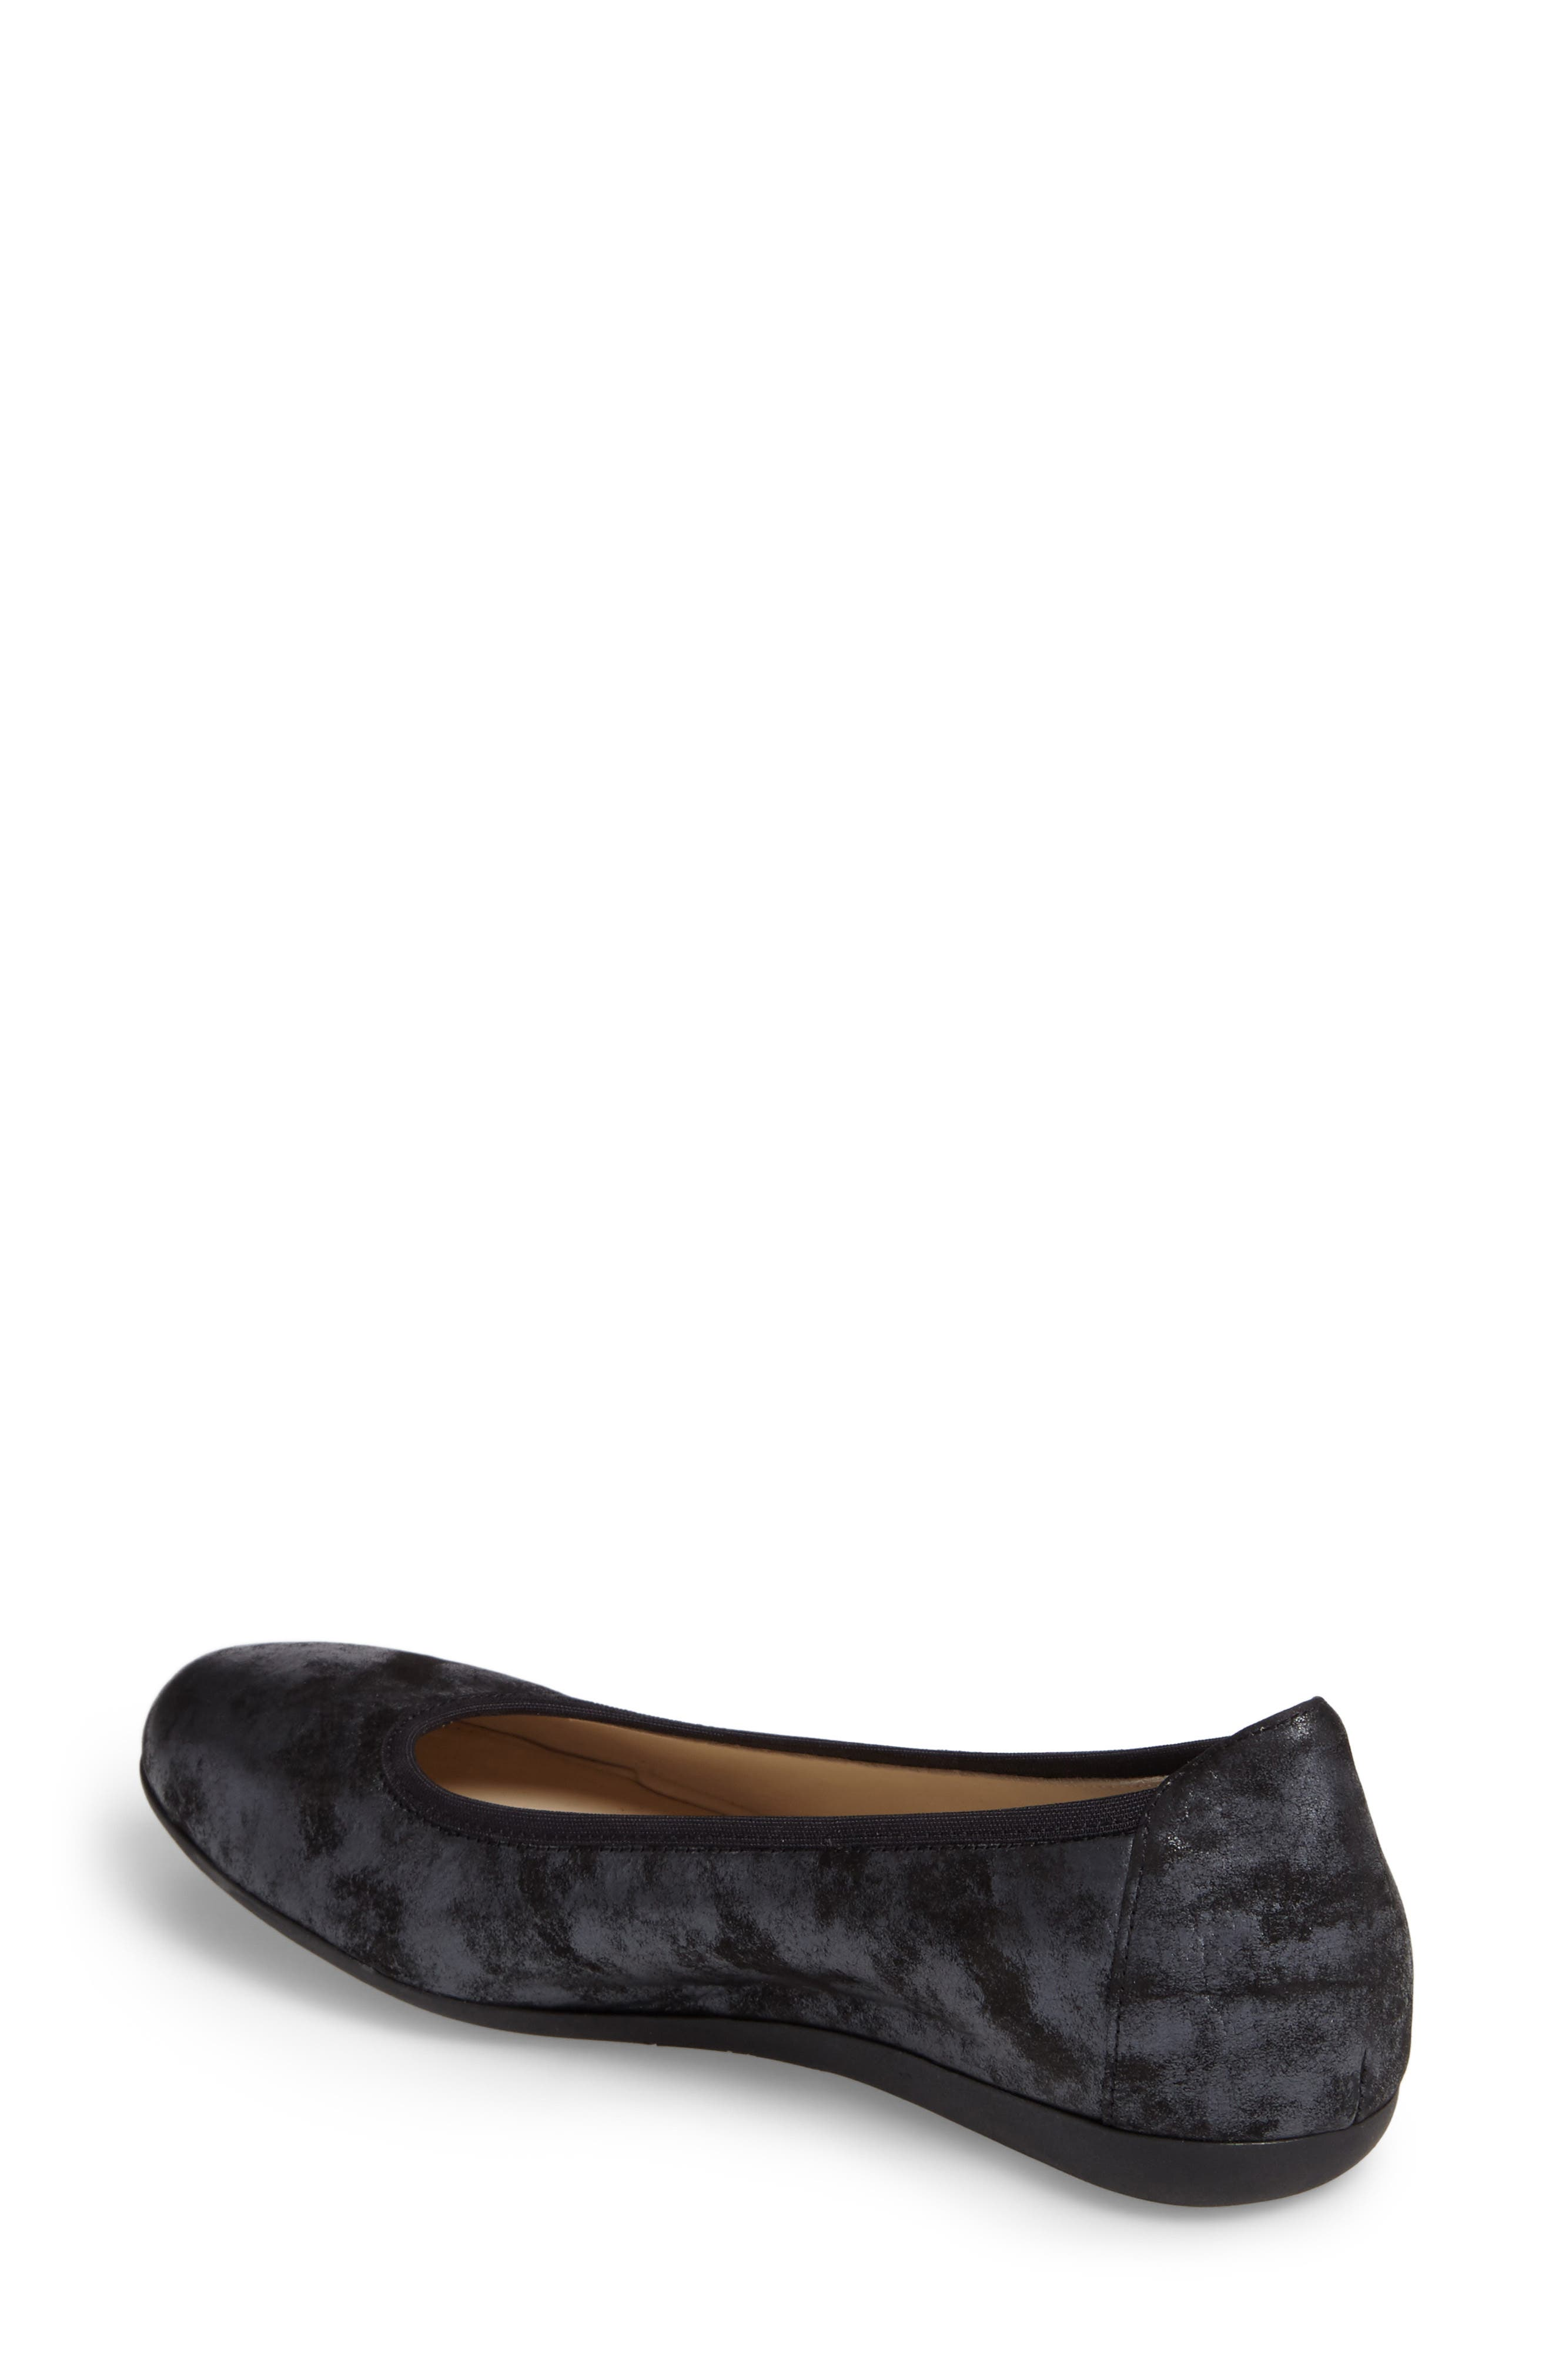 Alternate Image 2  - Wolky Tampa Sacchetto Ballet Flat (Women)